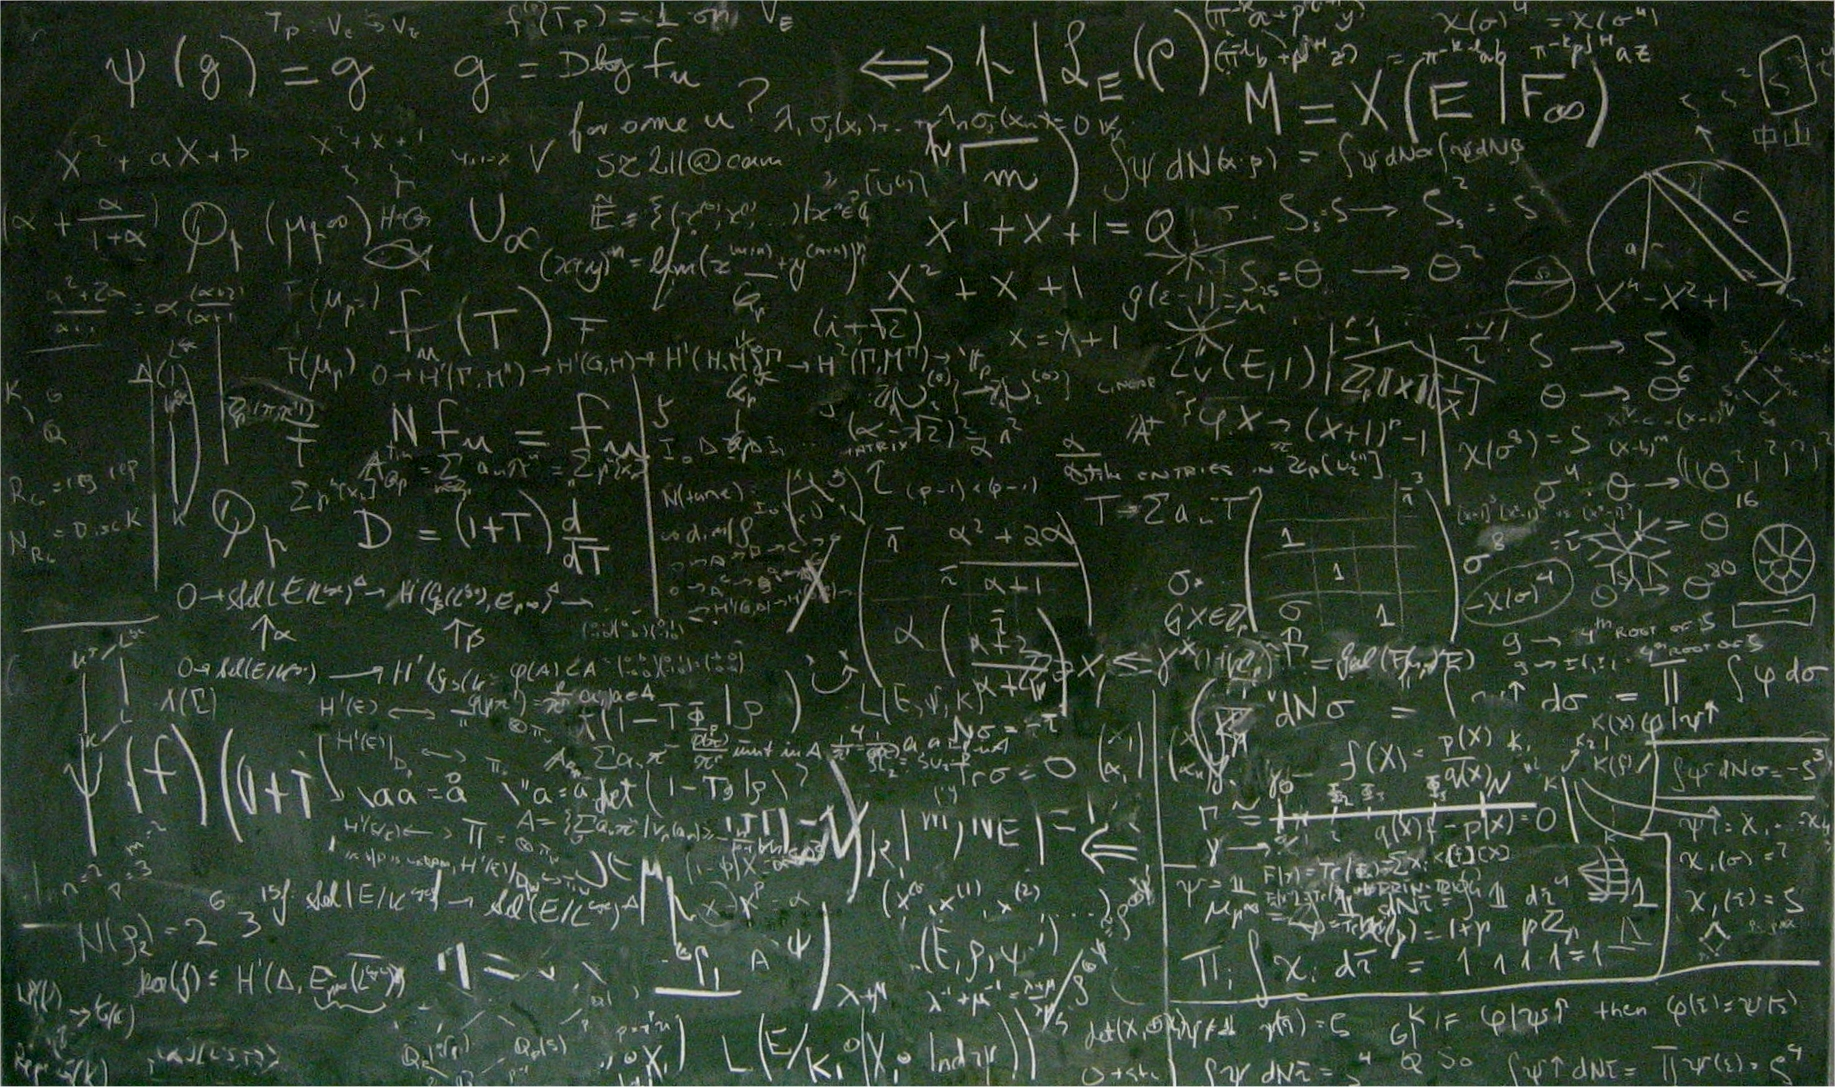 Chalkboards Wallpaper 1835x1087 Mathematics Chalkboards Equation 1835x1087